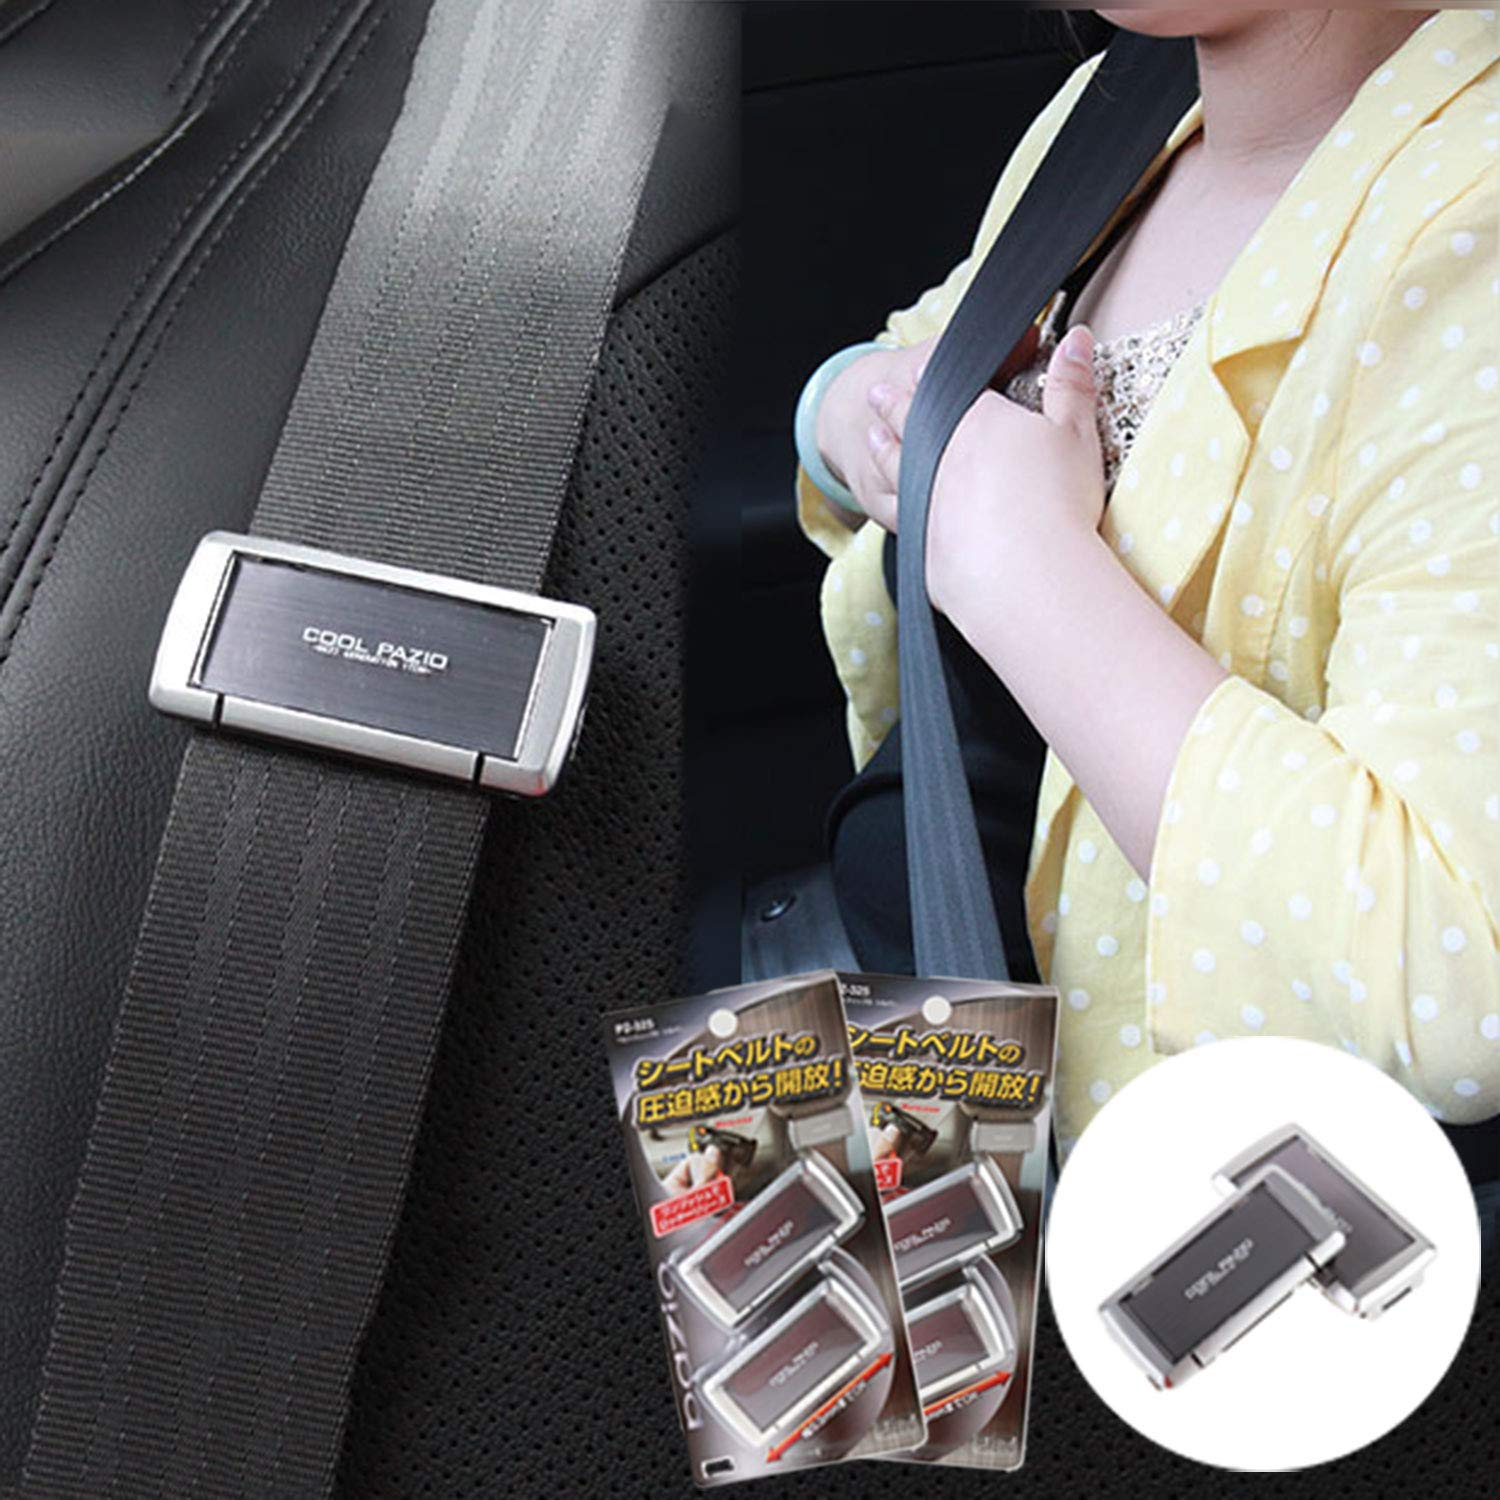 FancyAuto 2 Car Seat Belt Strap Adjuster Support Clip Improves Comfort Safety Clip Fit Stopper for Universal Car(PZ-325)